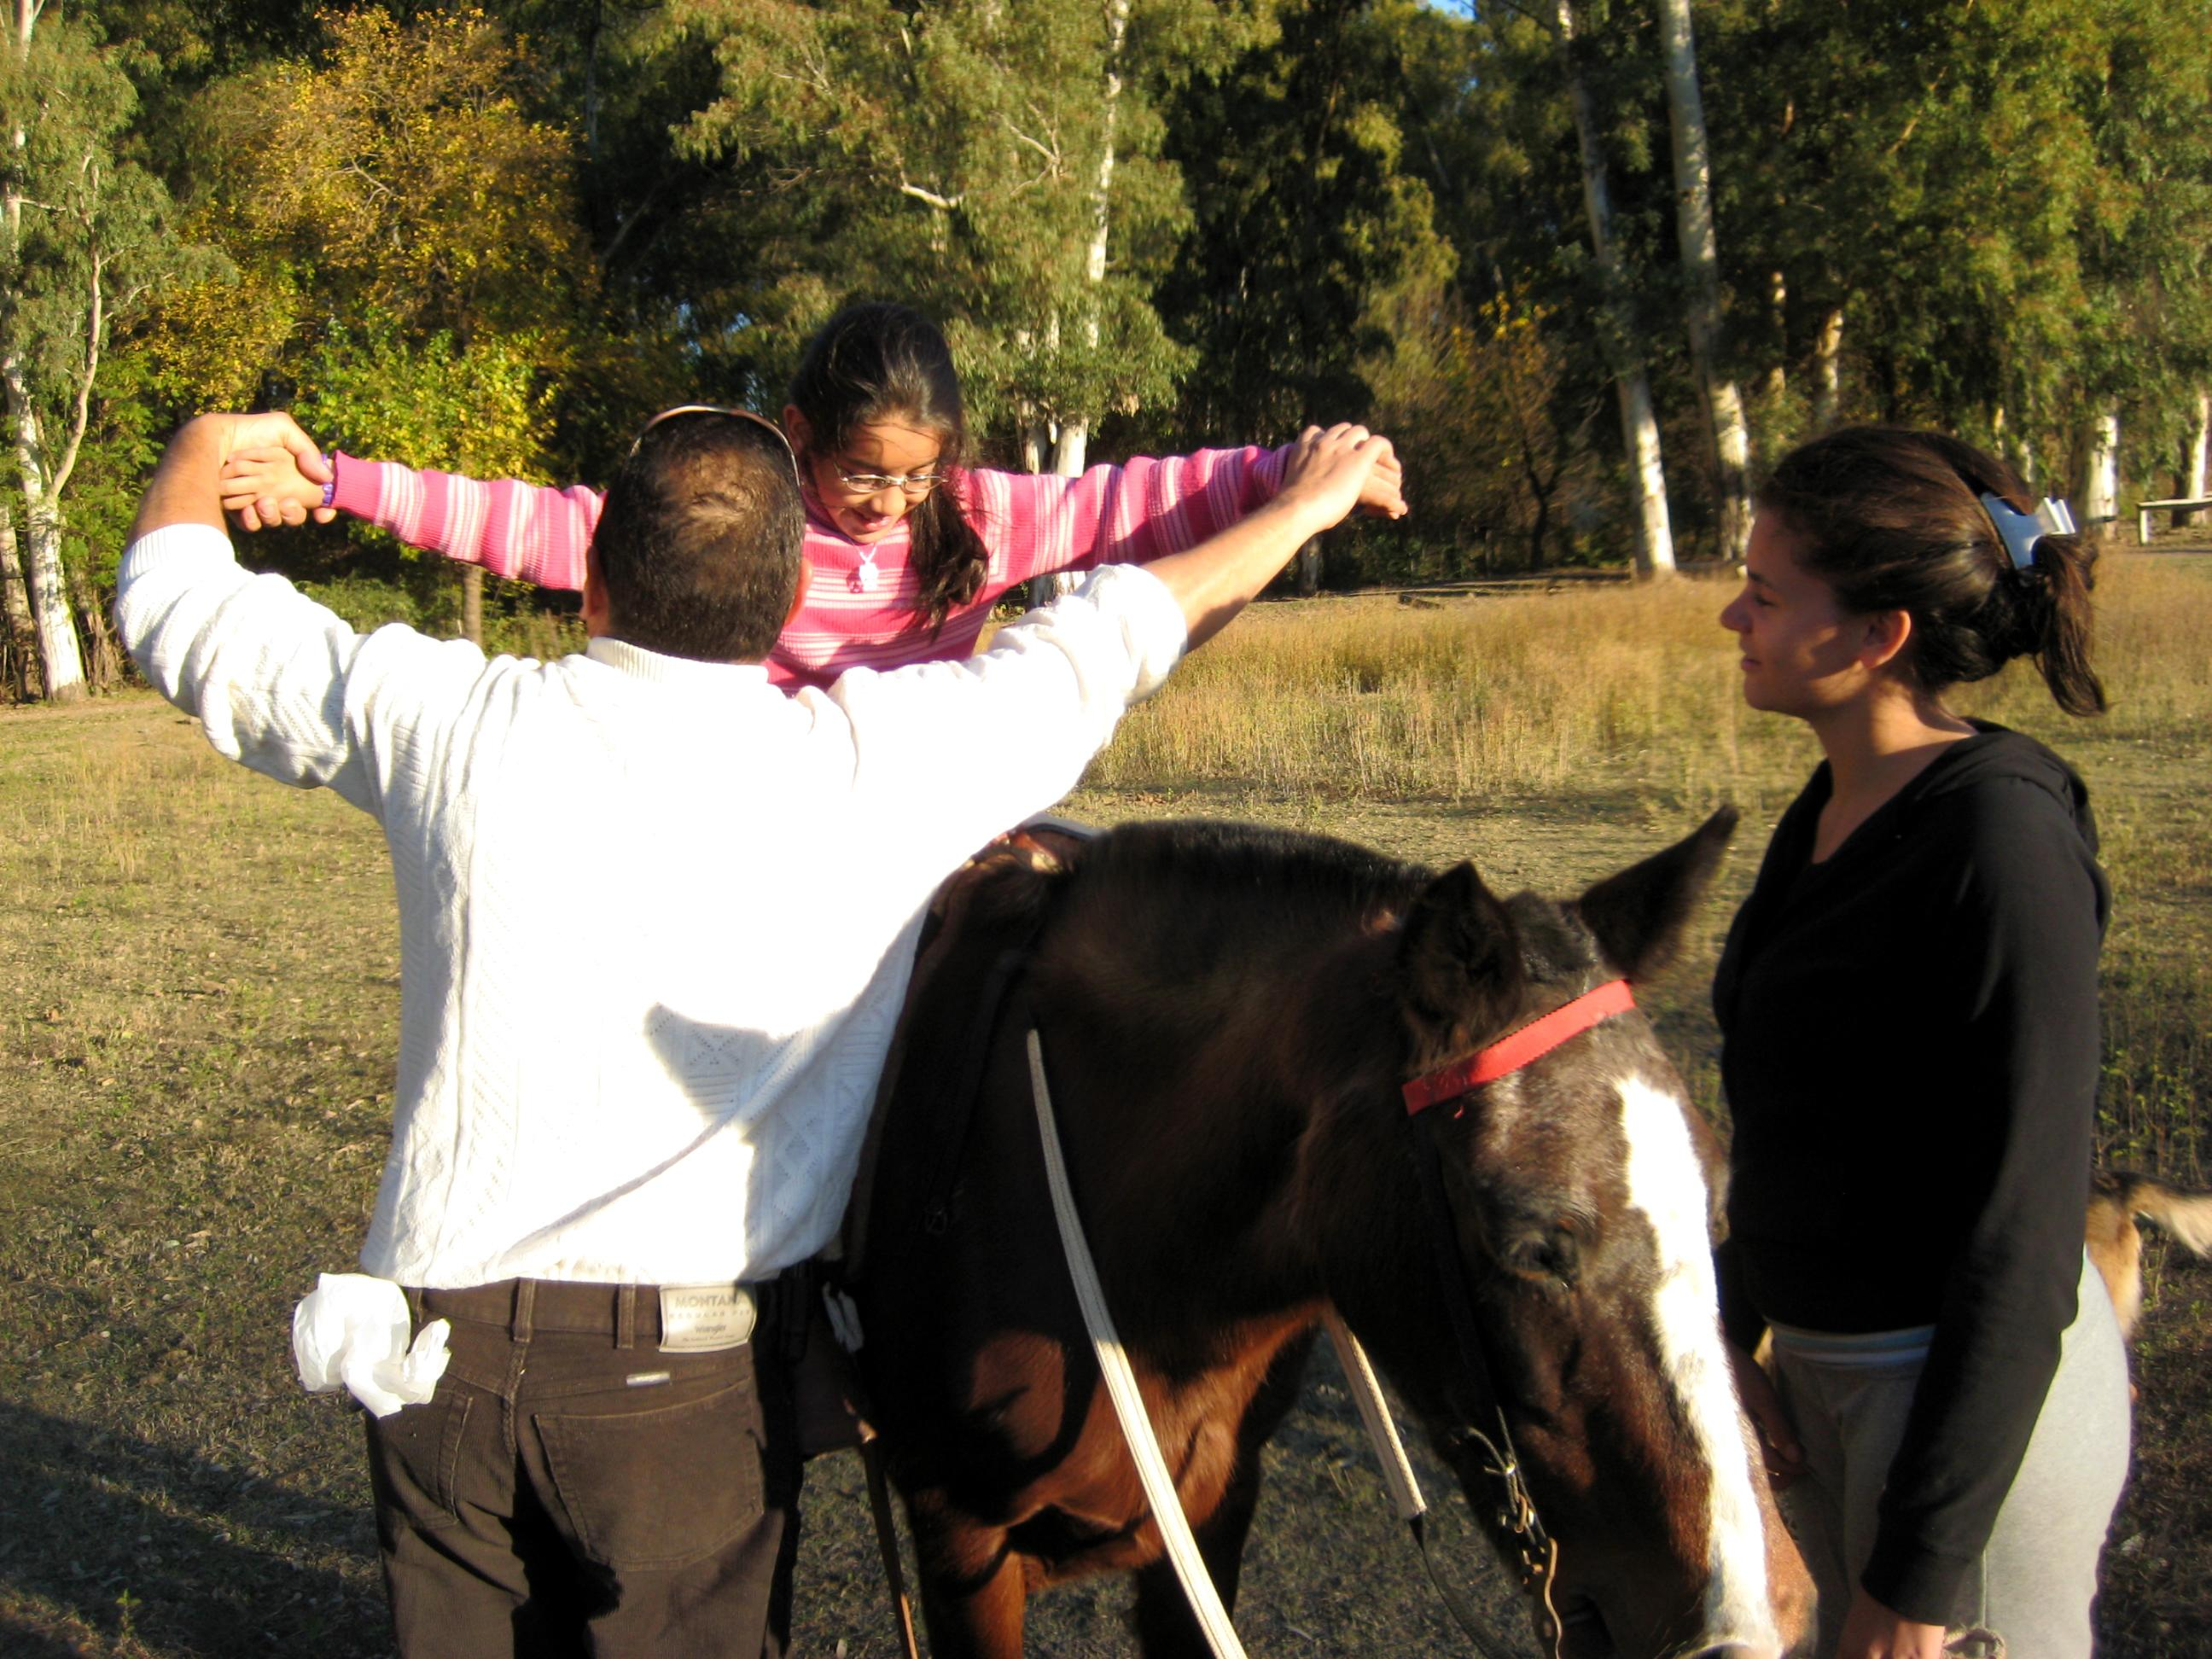 Equine Therapy interns help a young child ride a horse during a therapy session at a centre in Argentina.